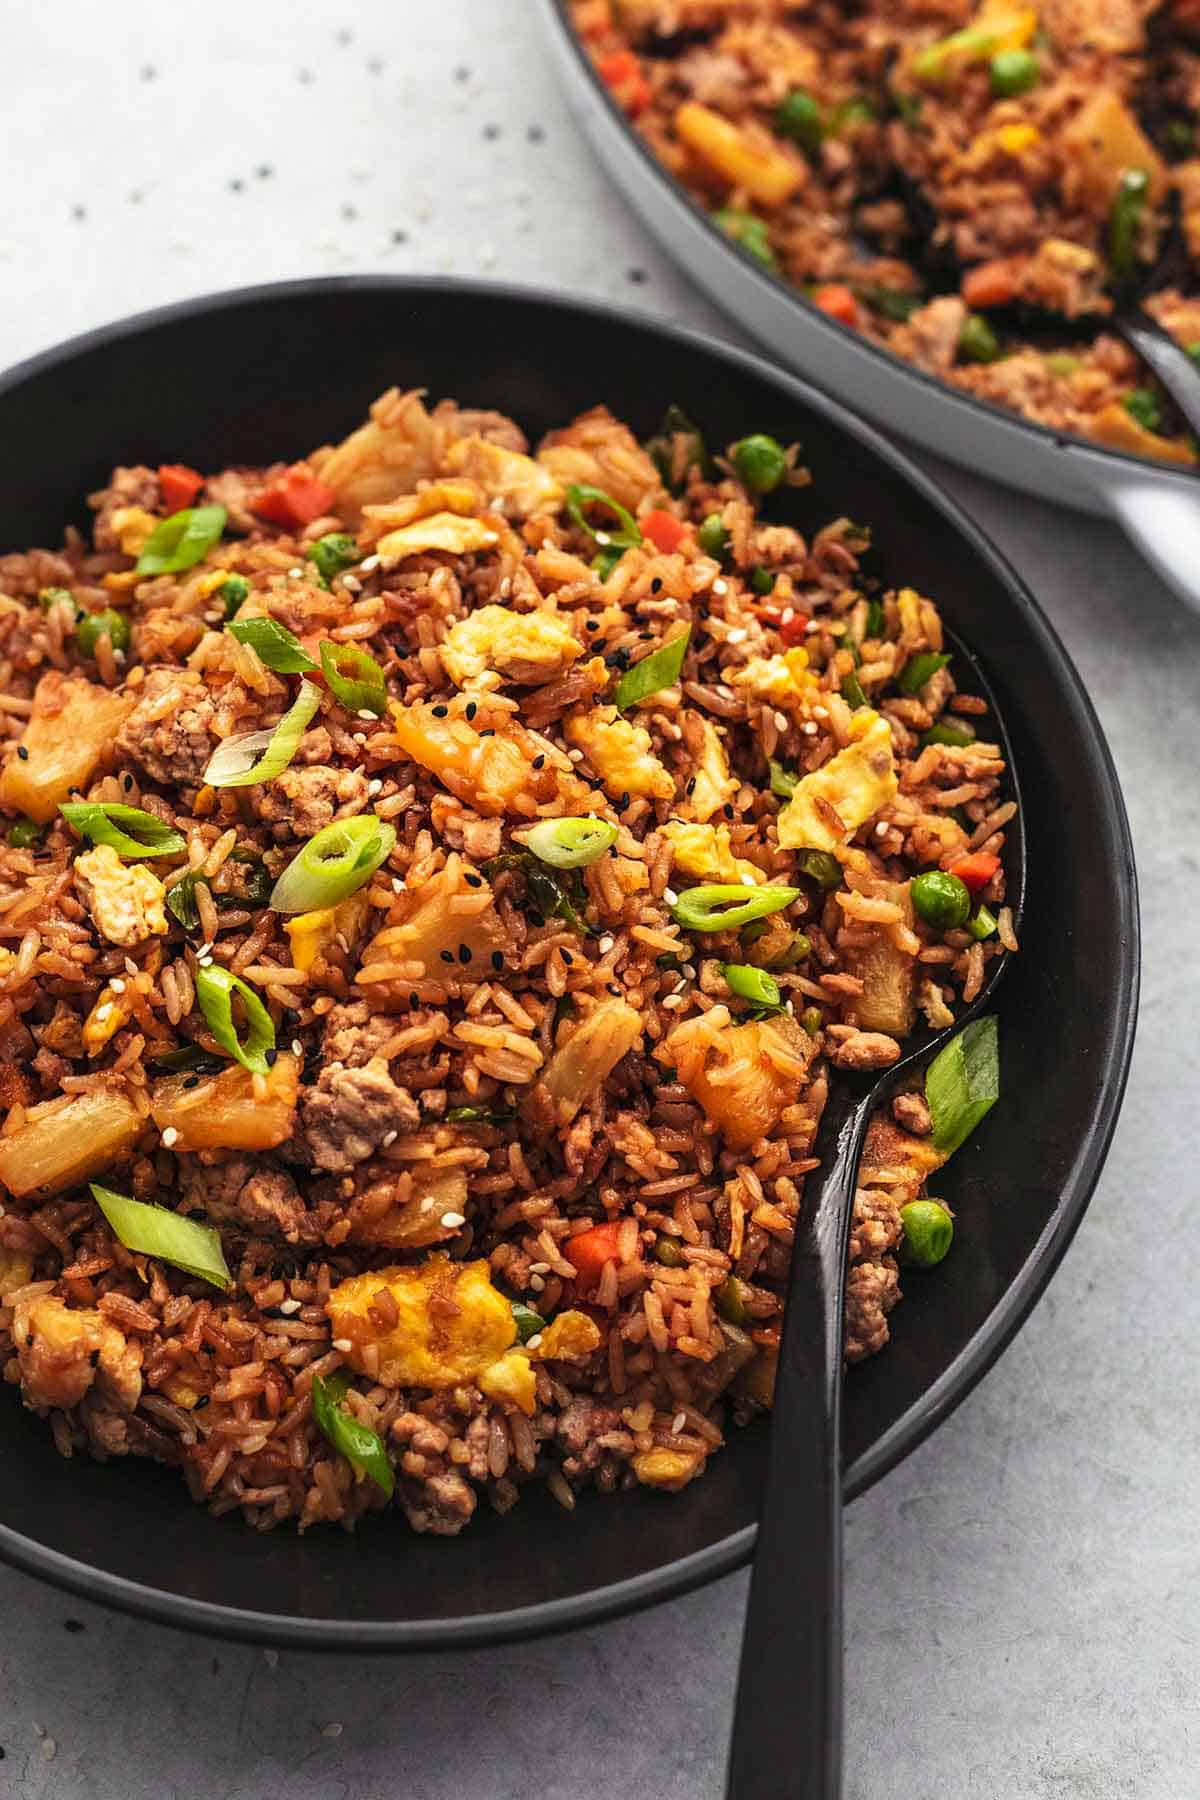 fried rice in black bowl with serving spoon